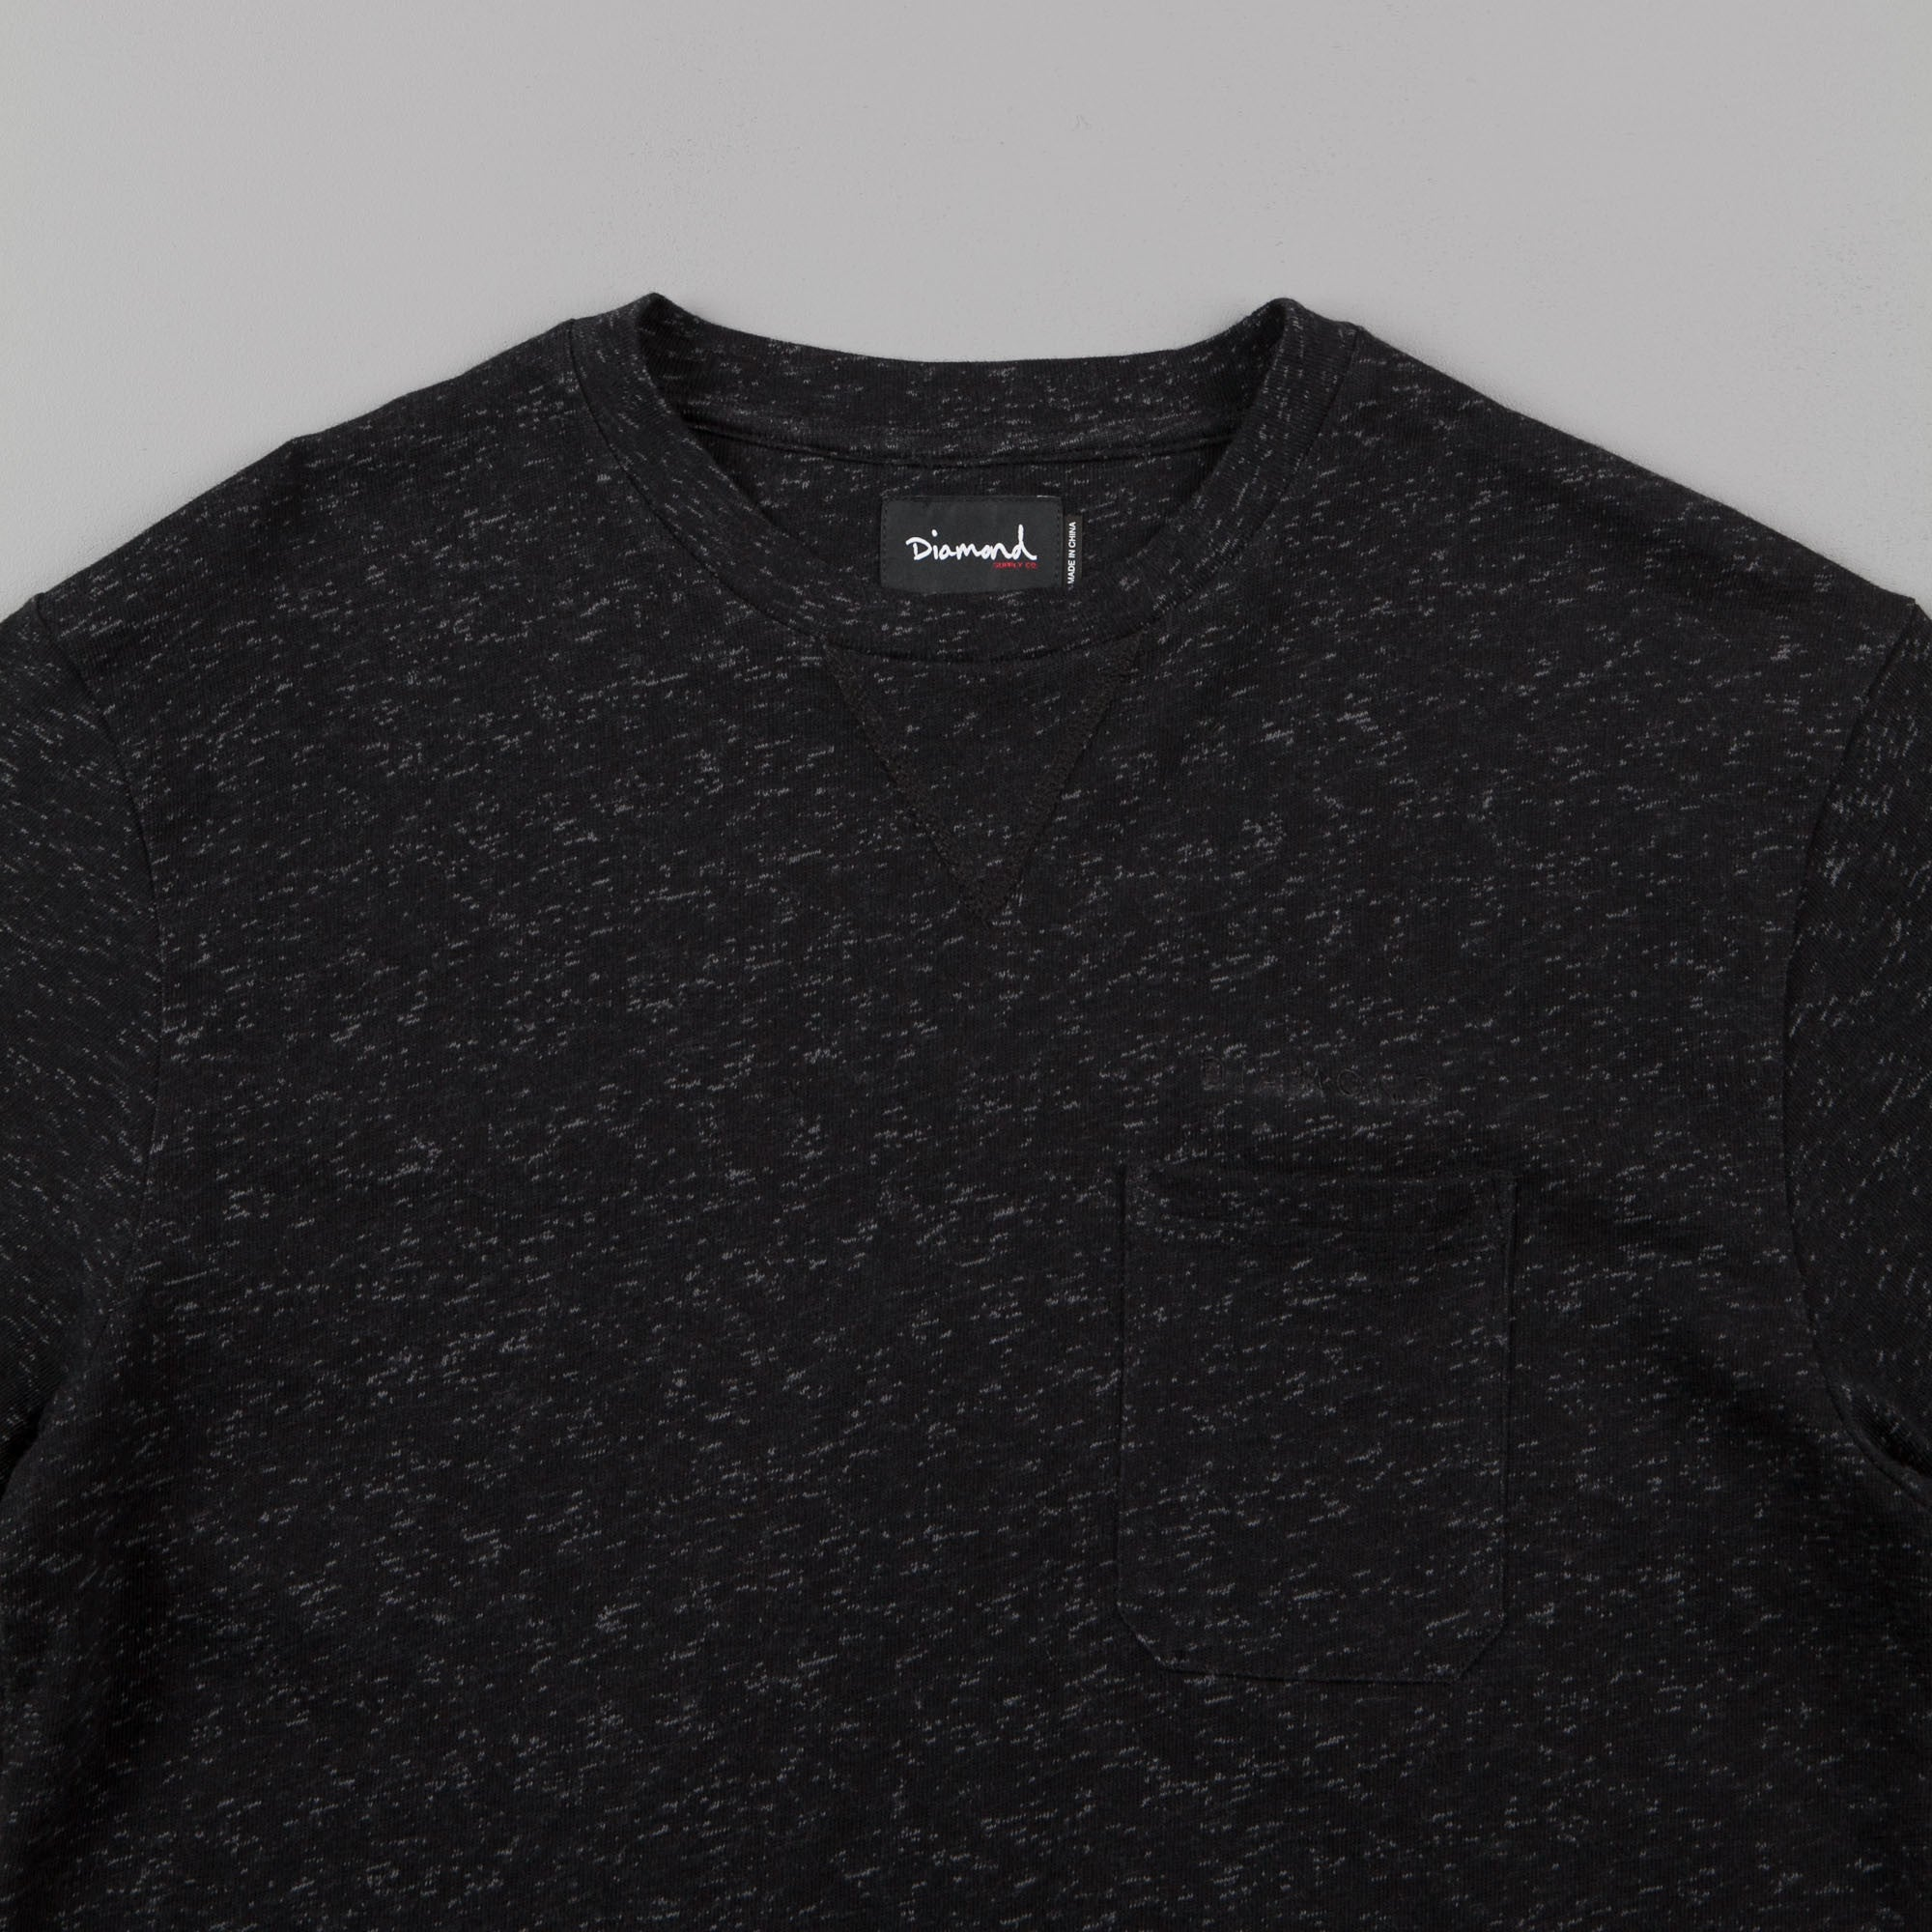 Diamond Black Facet Pocket T-Shirt - Black